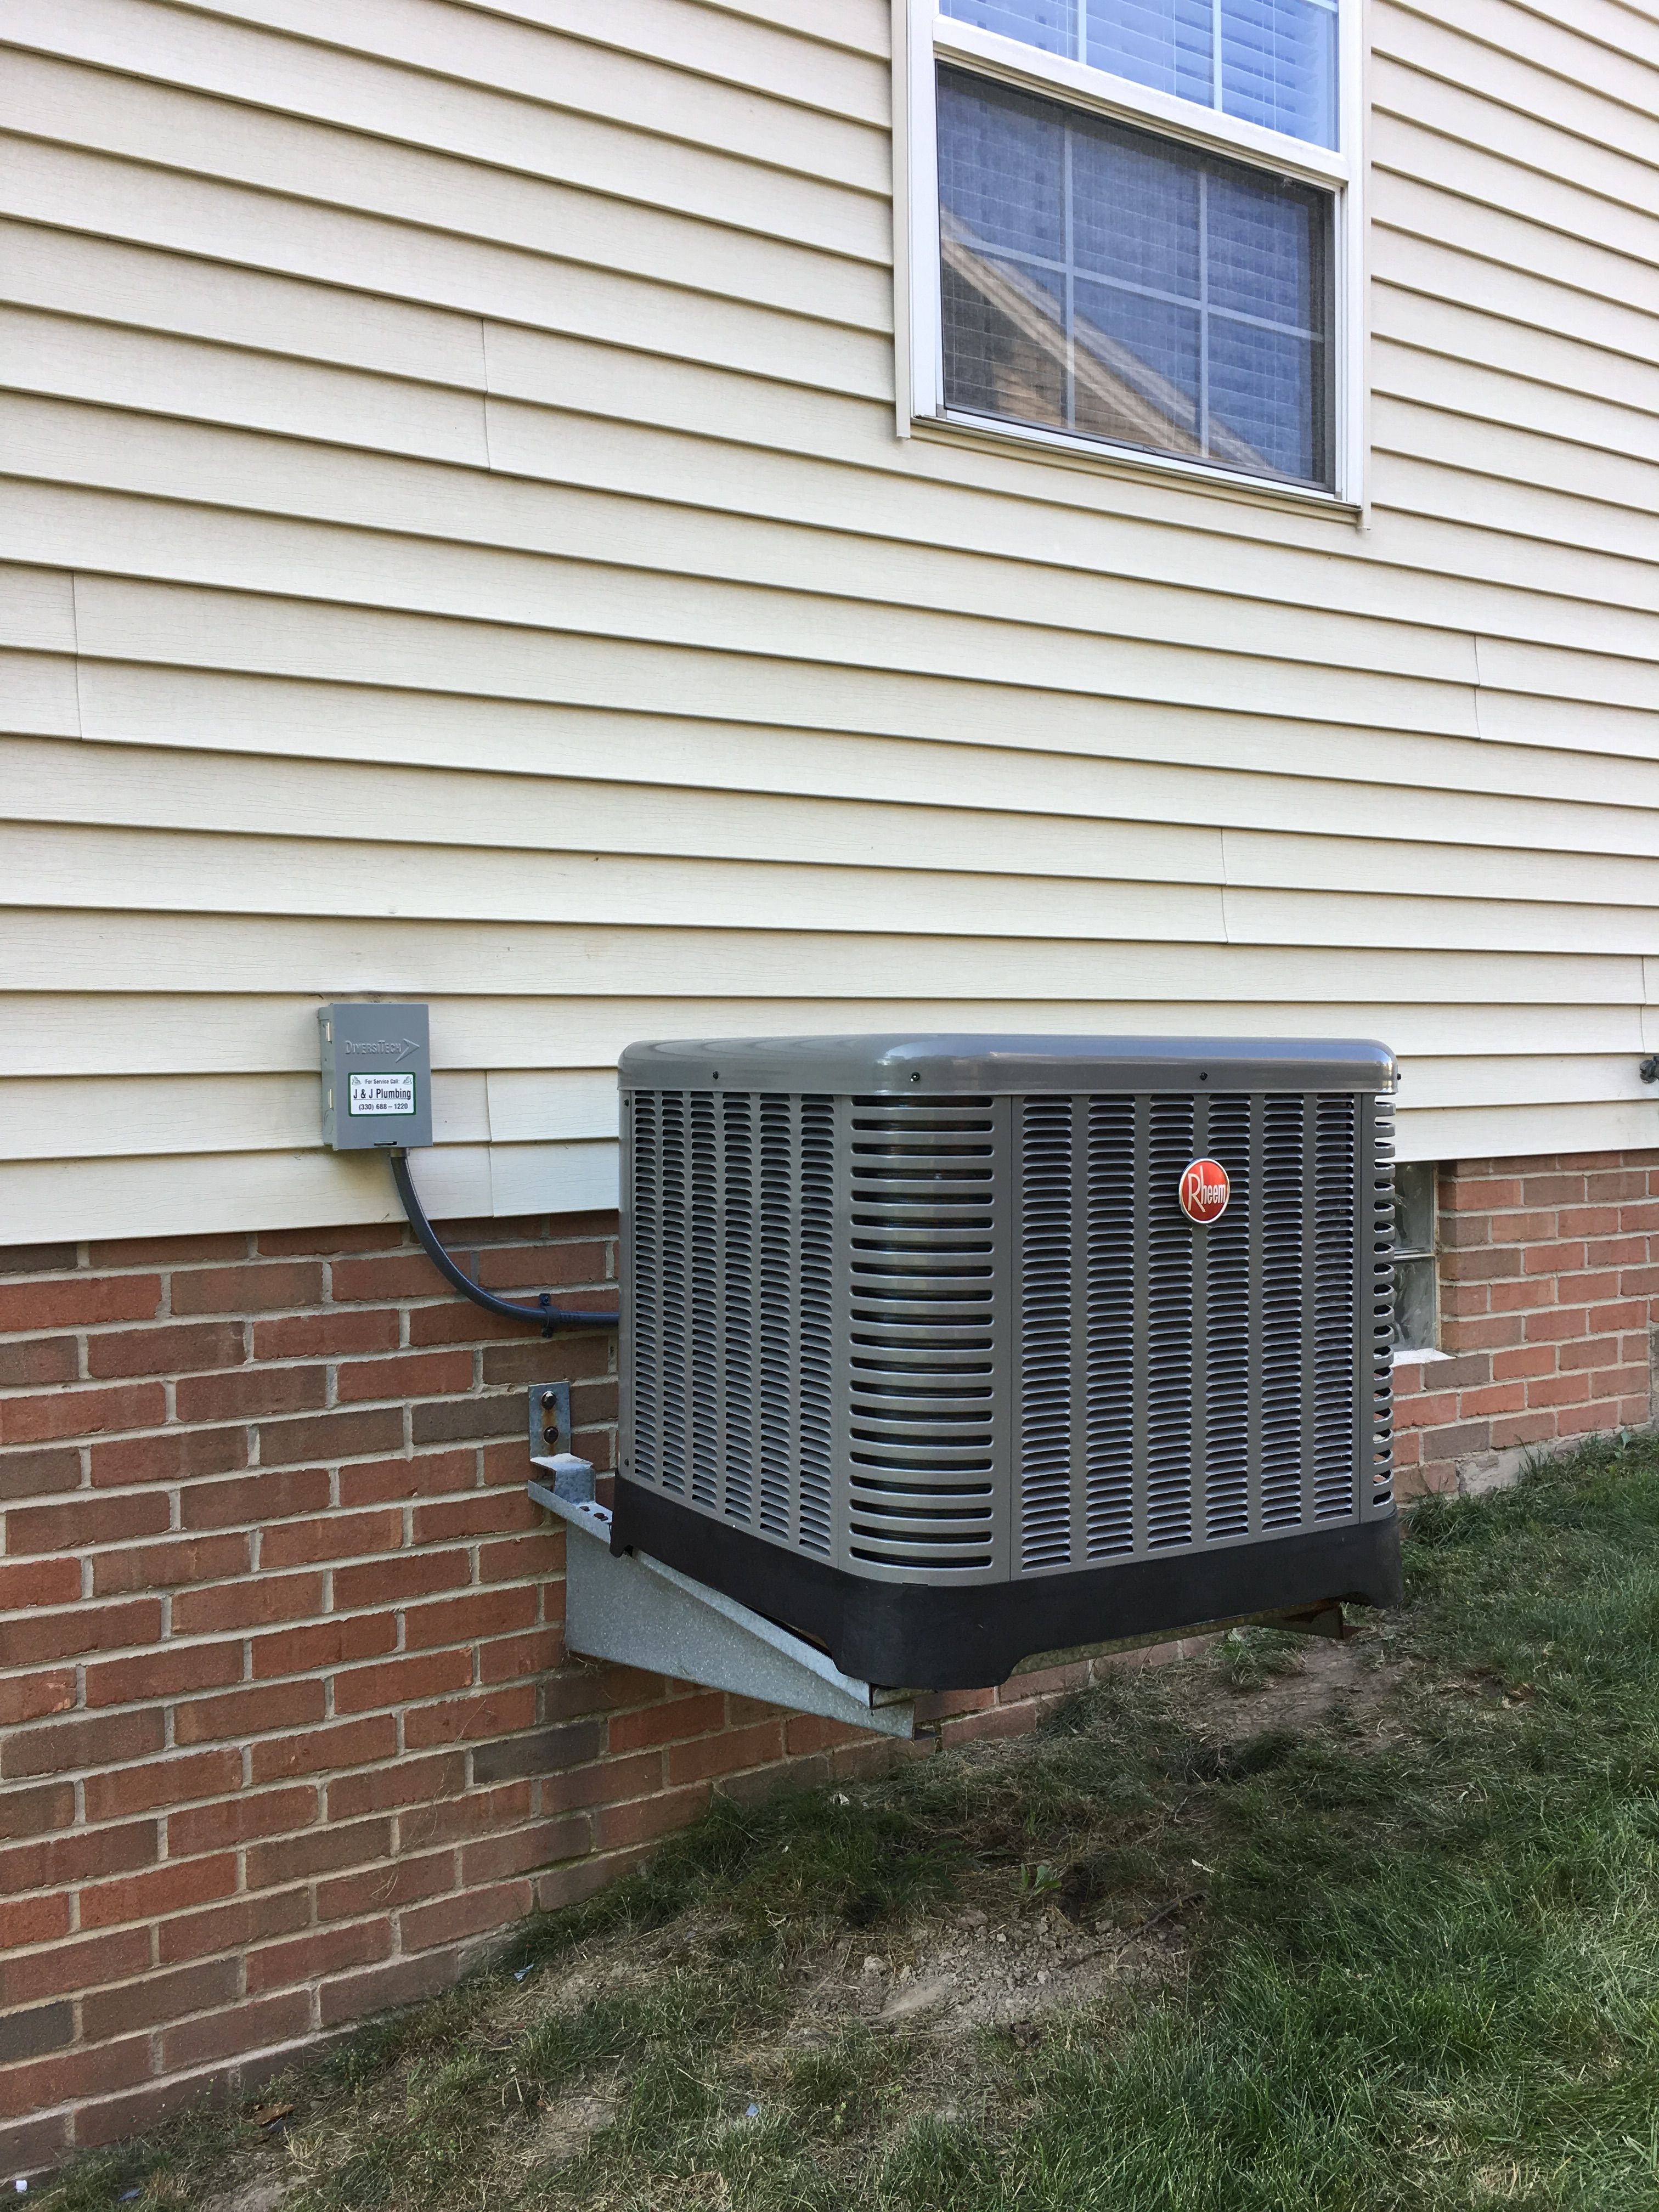 New System Install By An Amazing Hvac Company In Tallmadge Ohio